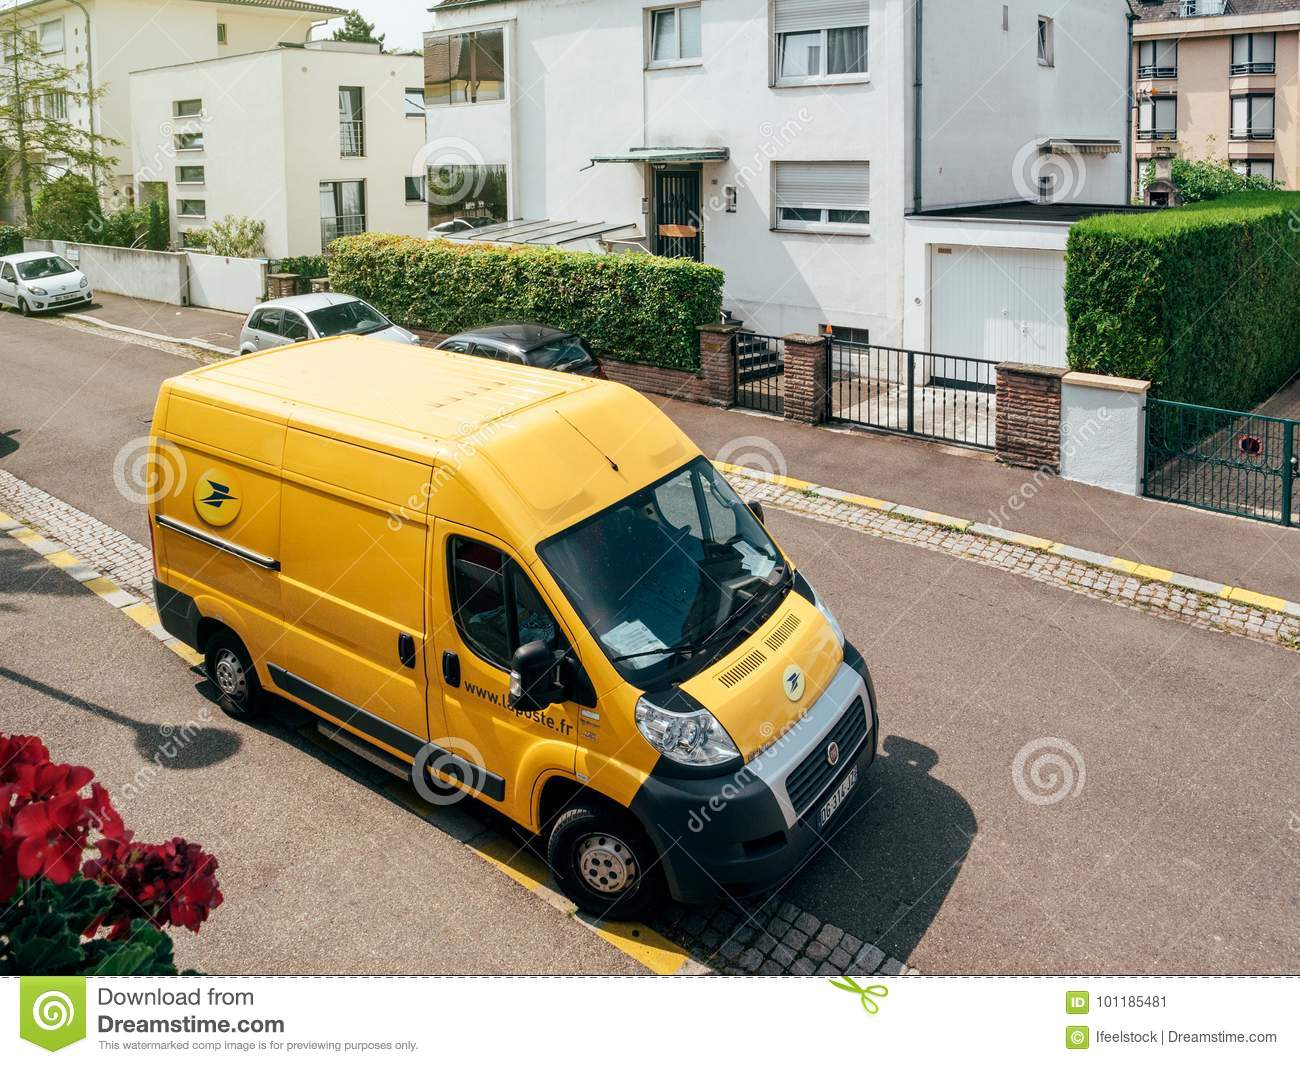 932ce0458f La Poste Yellow Delivery Van Editorial Photo - Image of freight ...